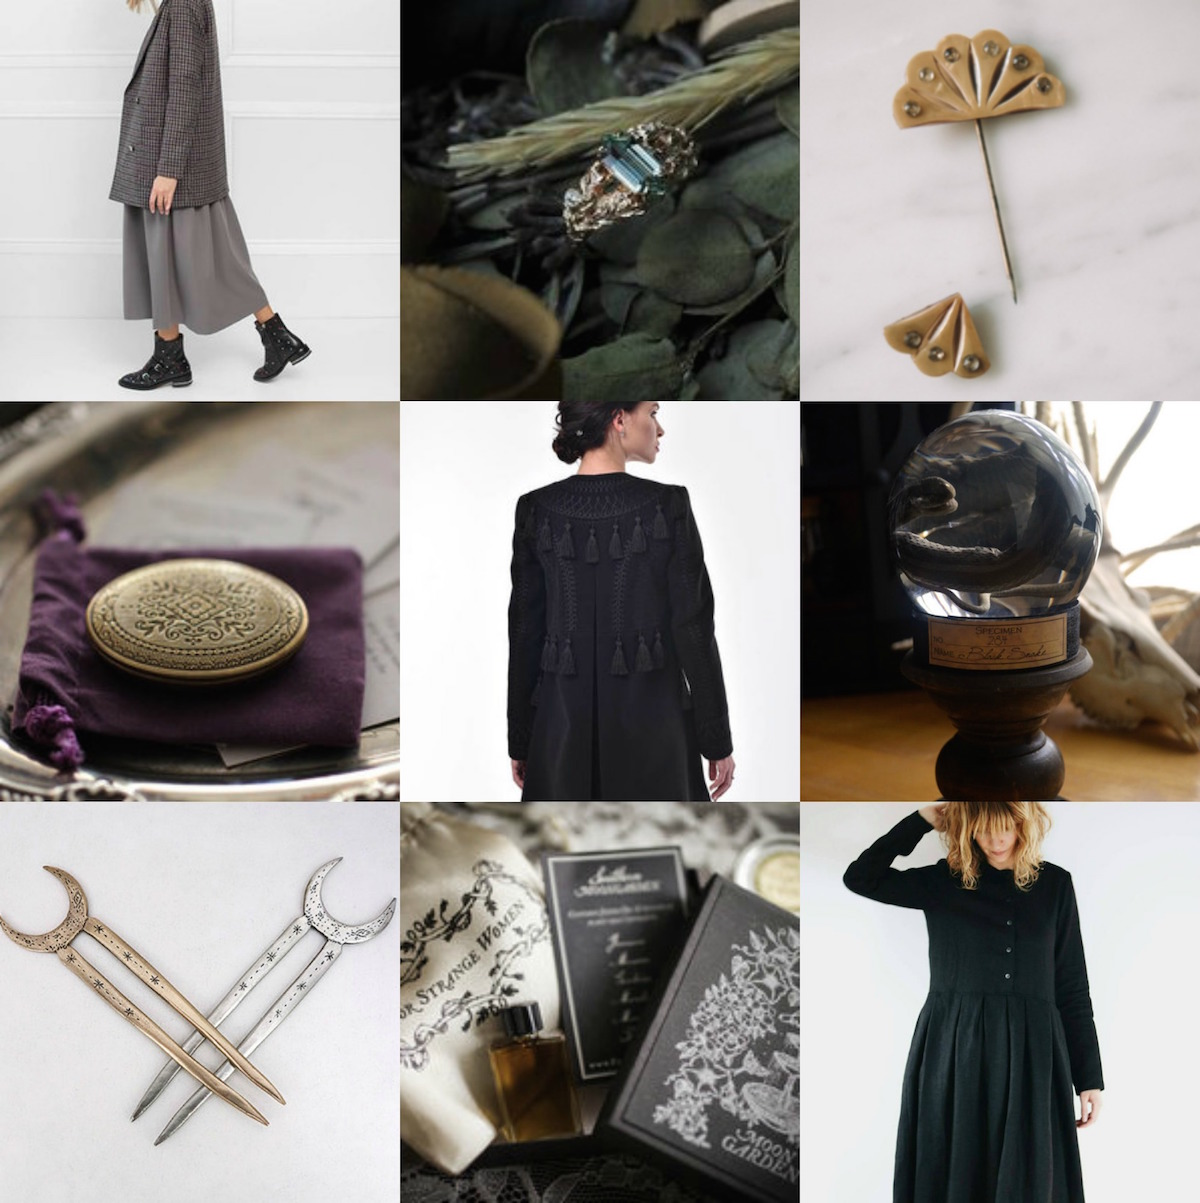 Thou shalt covet! - A list of beautiful things that I would sin for.